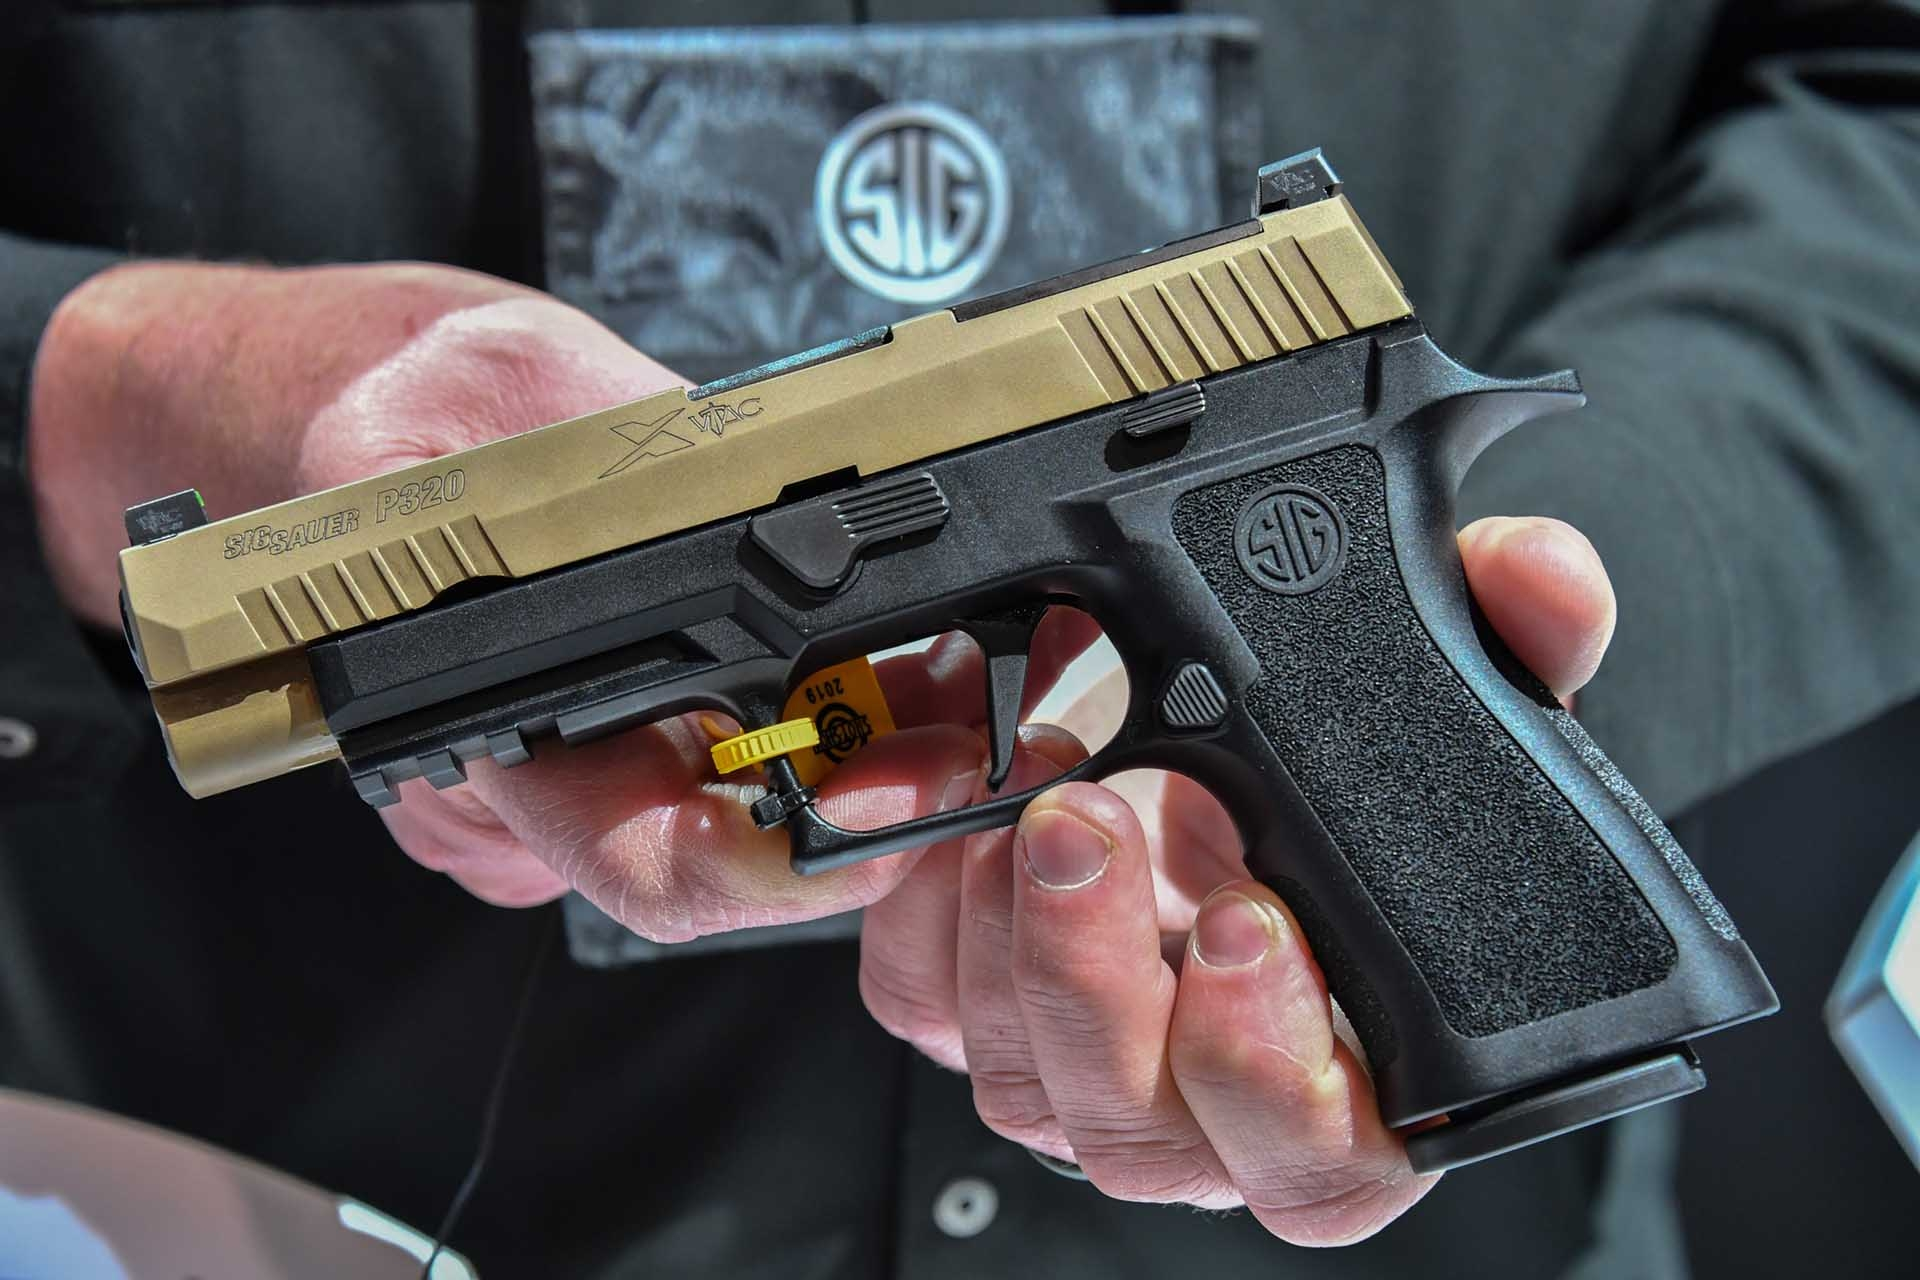 The SIG Sauer P320 X-VTAC with its optics-ready